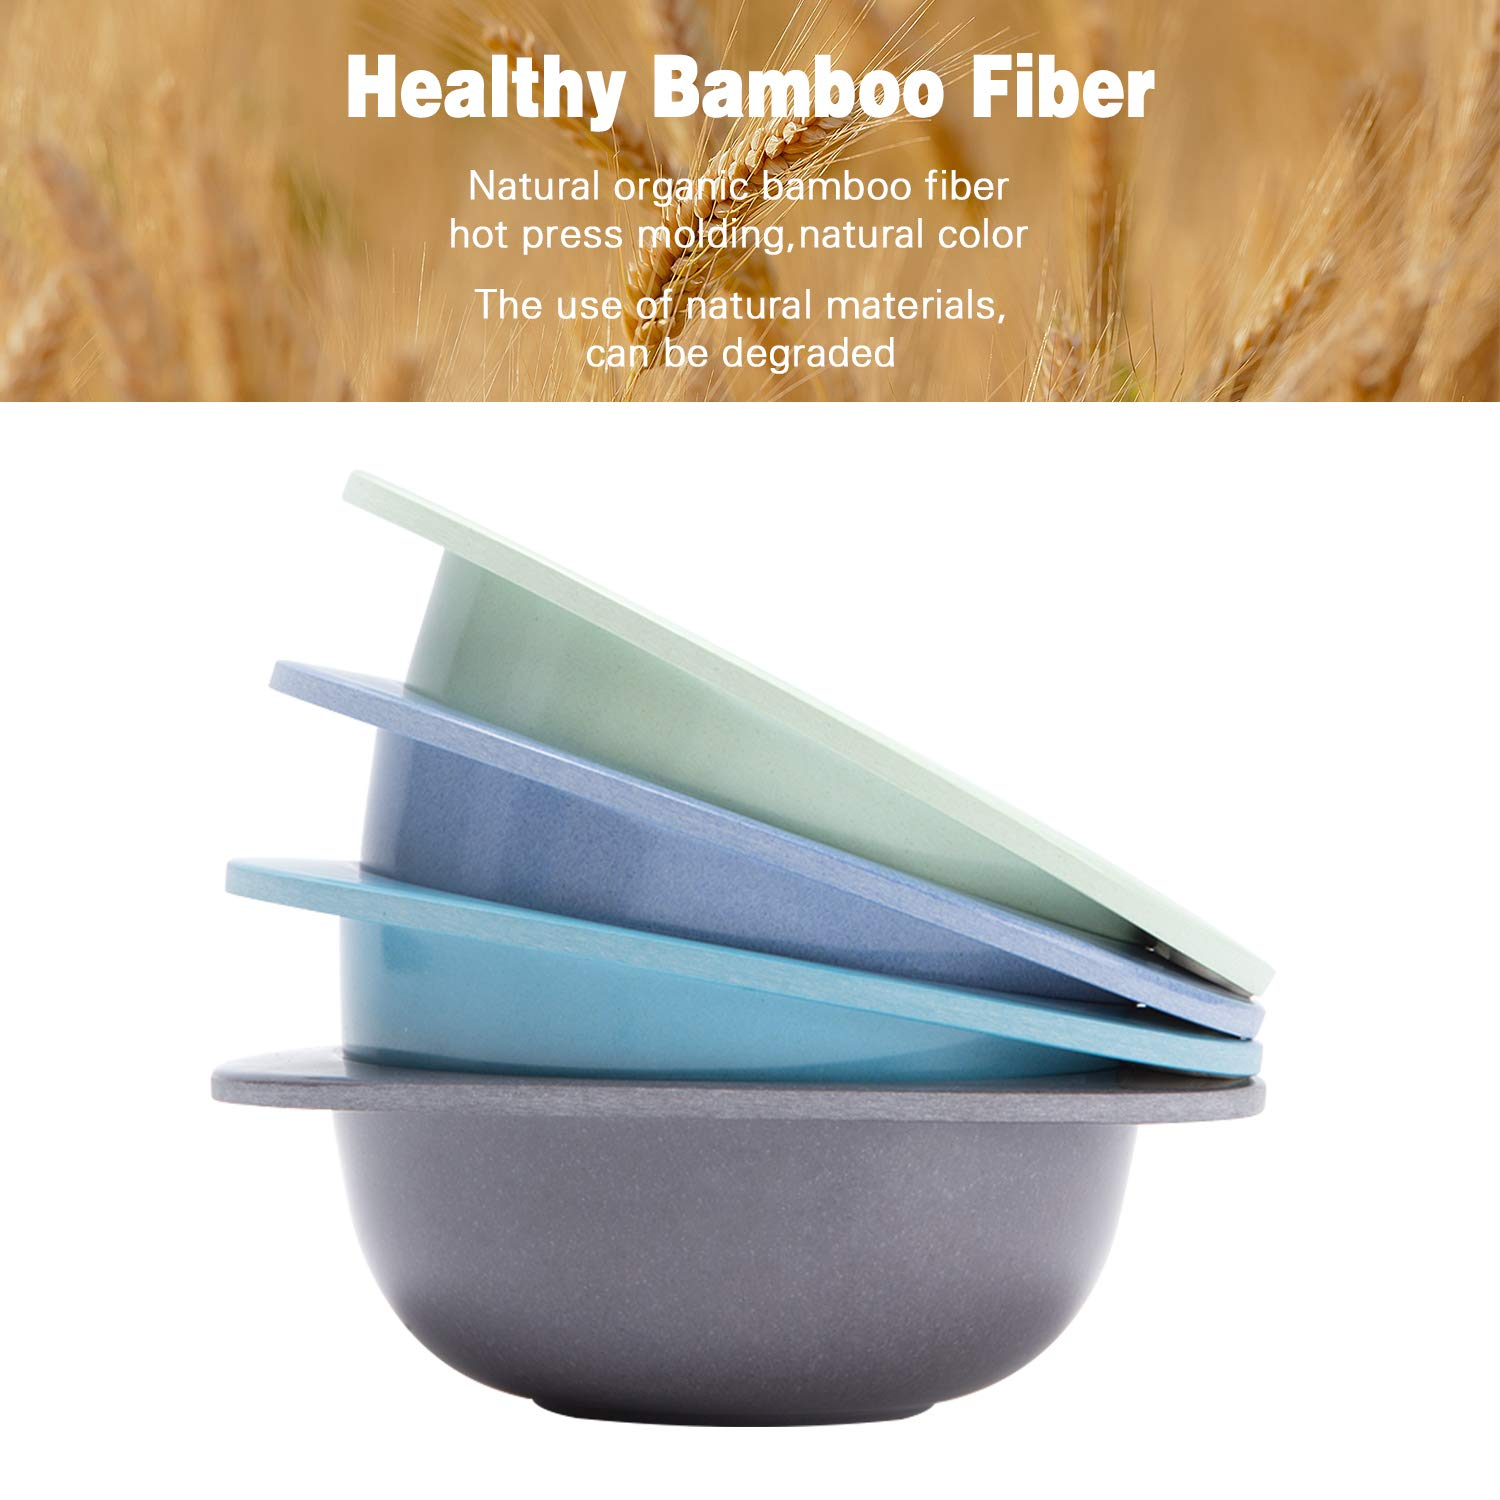 4pcs Bamboo Kids Bowls for Baby Feeding, Non Toxic & Safe Toddler Snack Bowls, Eco-Friendly Tableware for Baby Toddler Kids Bamboo Toddler Dishes & Dinnerware Sets by HM-tech